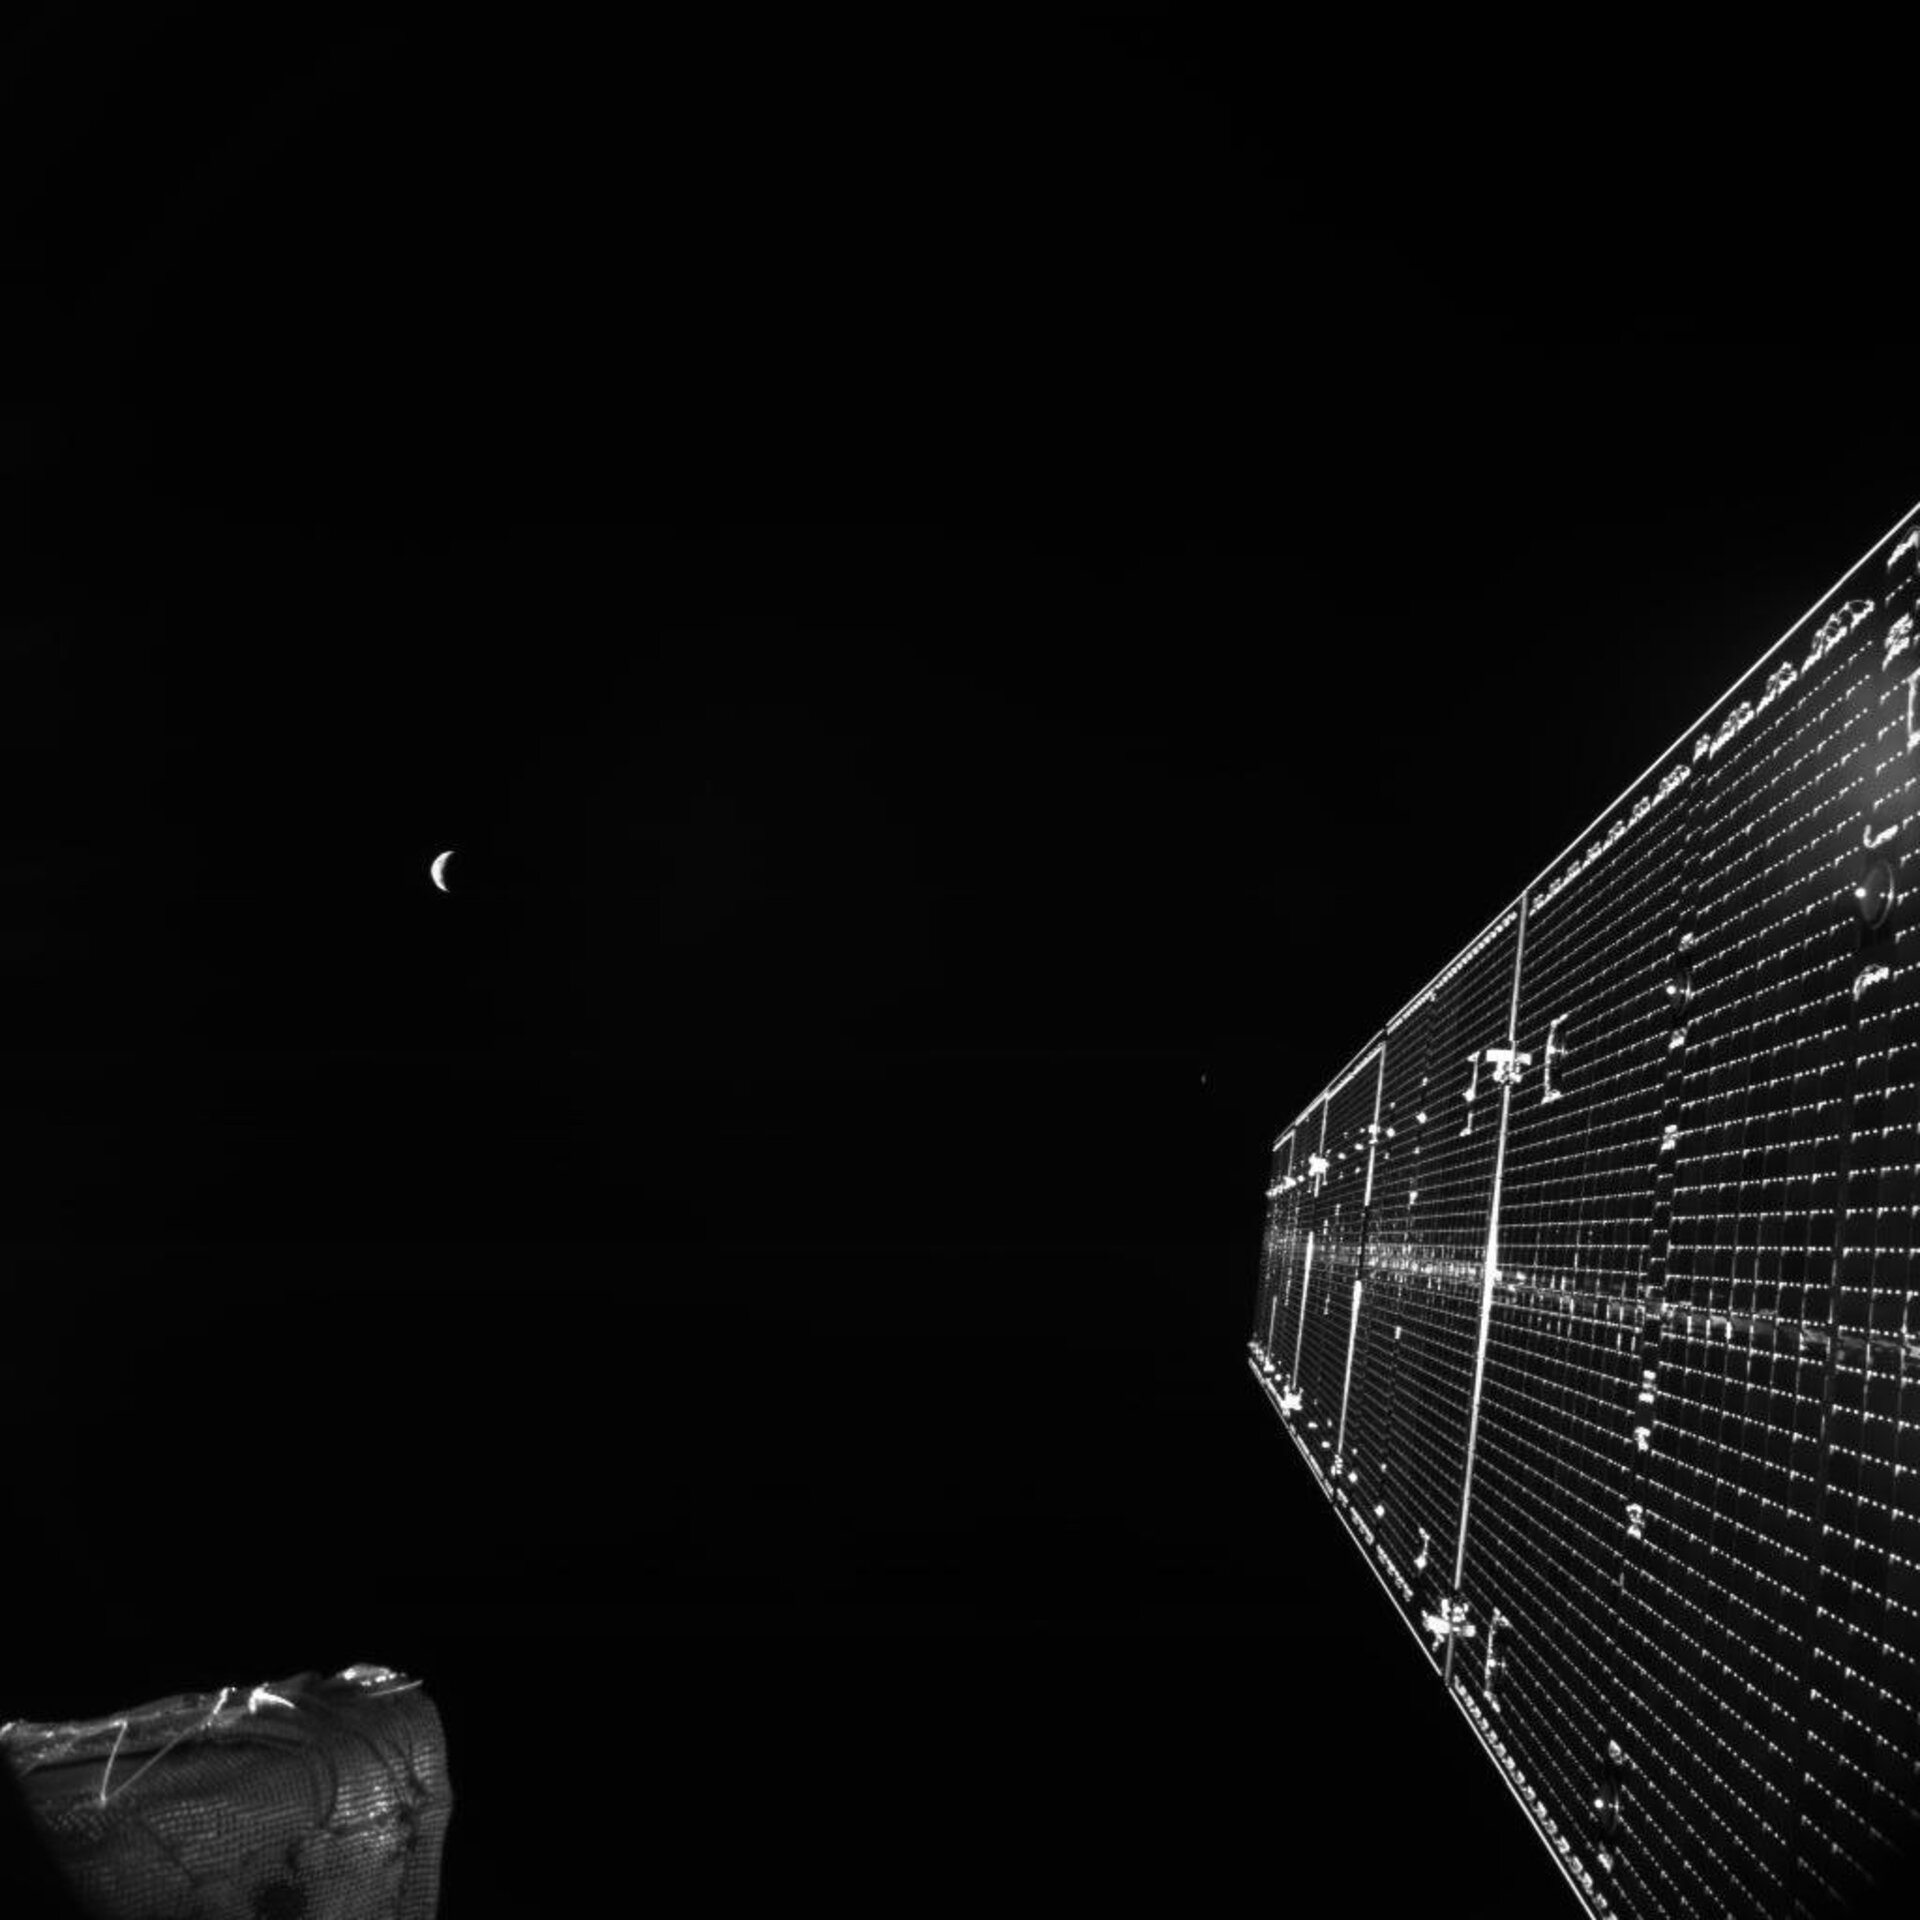 BepiColombo bids farewell to Earth and the Moon